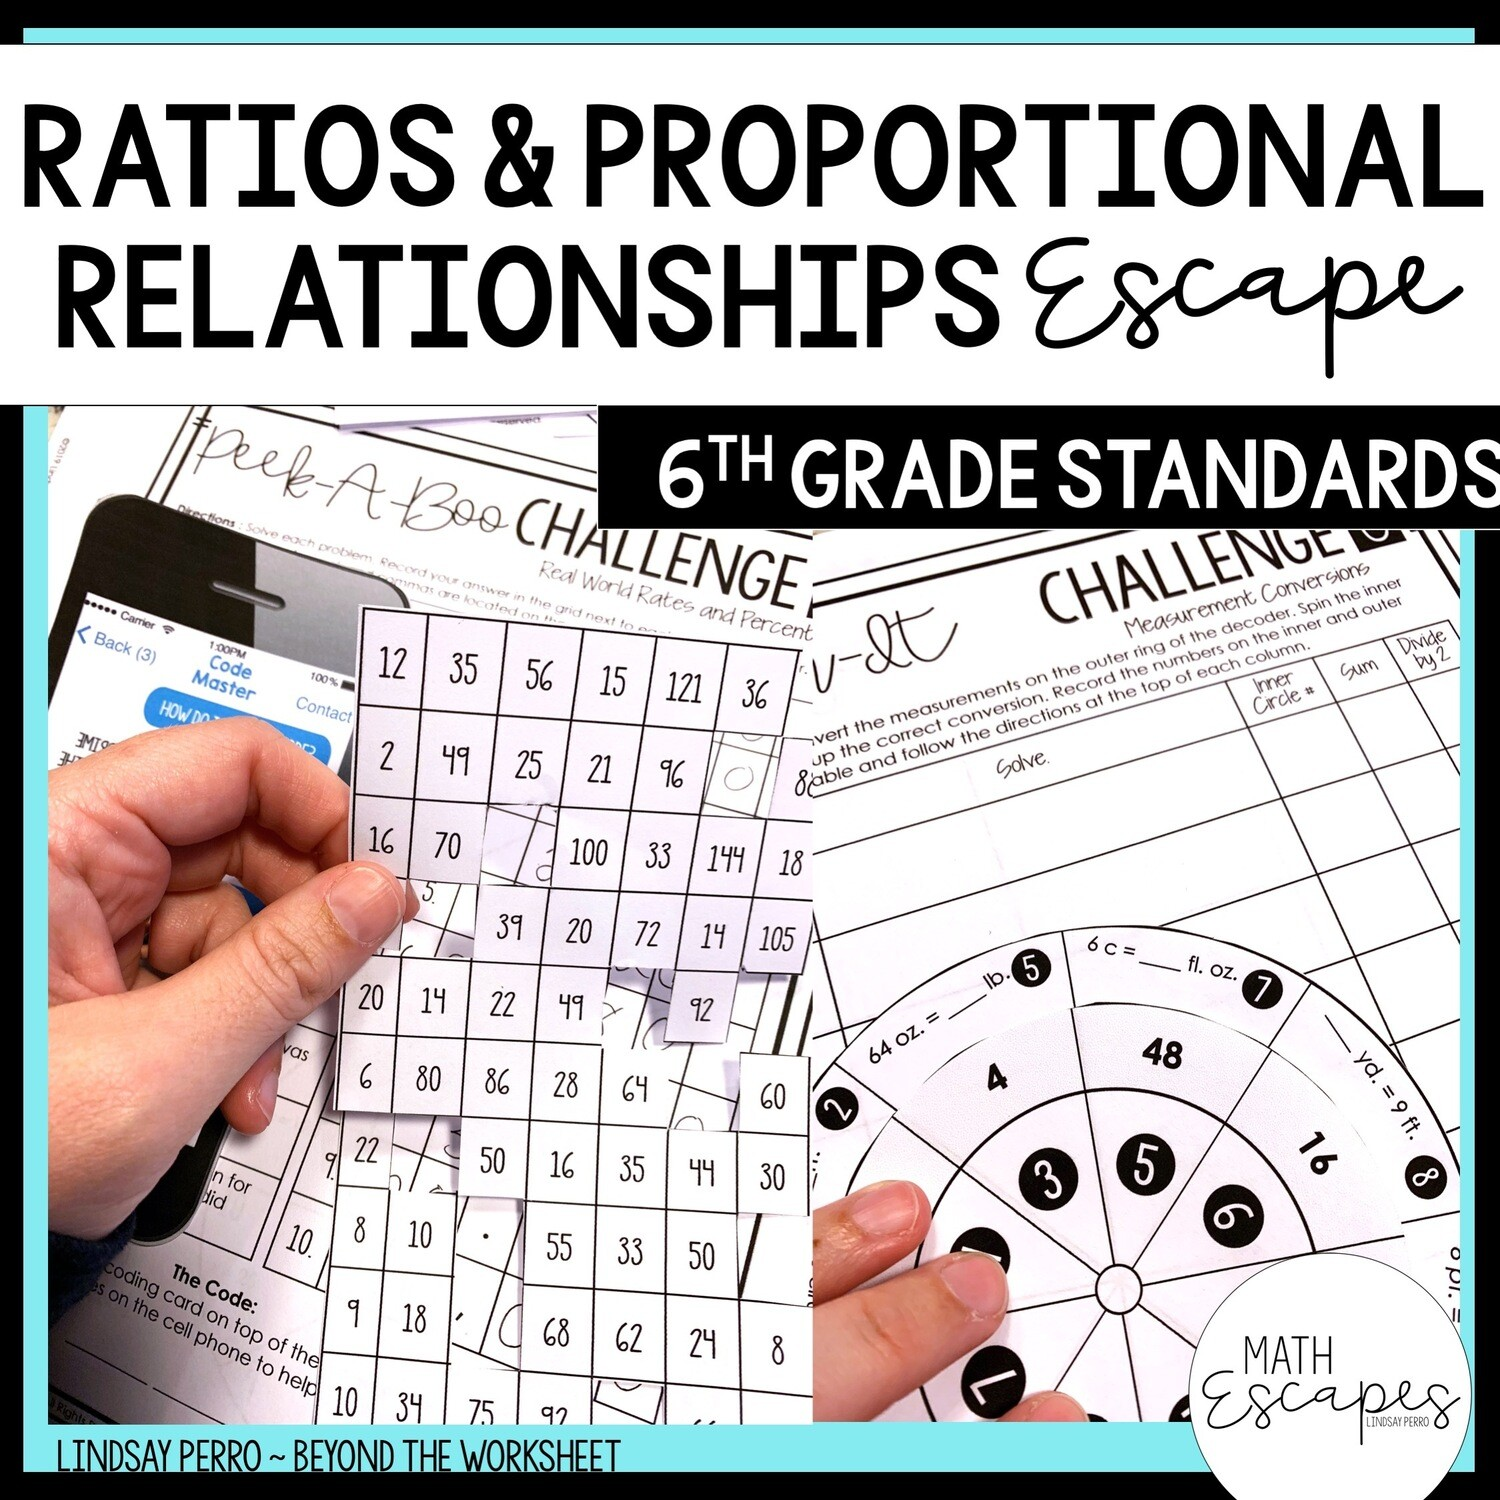 6th Grade Ratios And Proportional Reasoning Escape Room